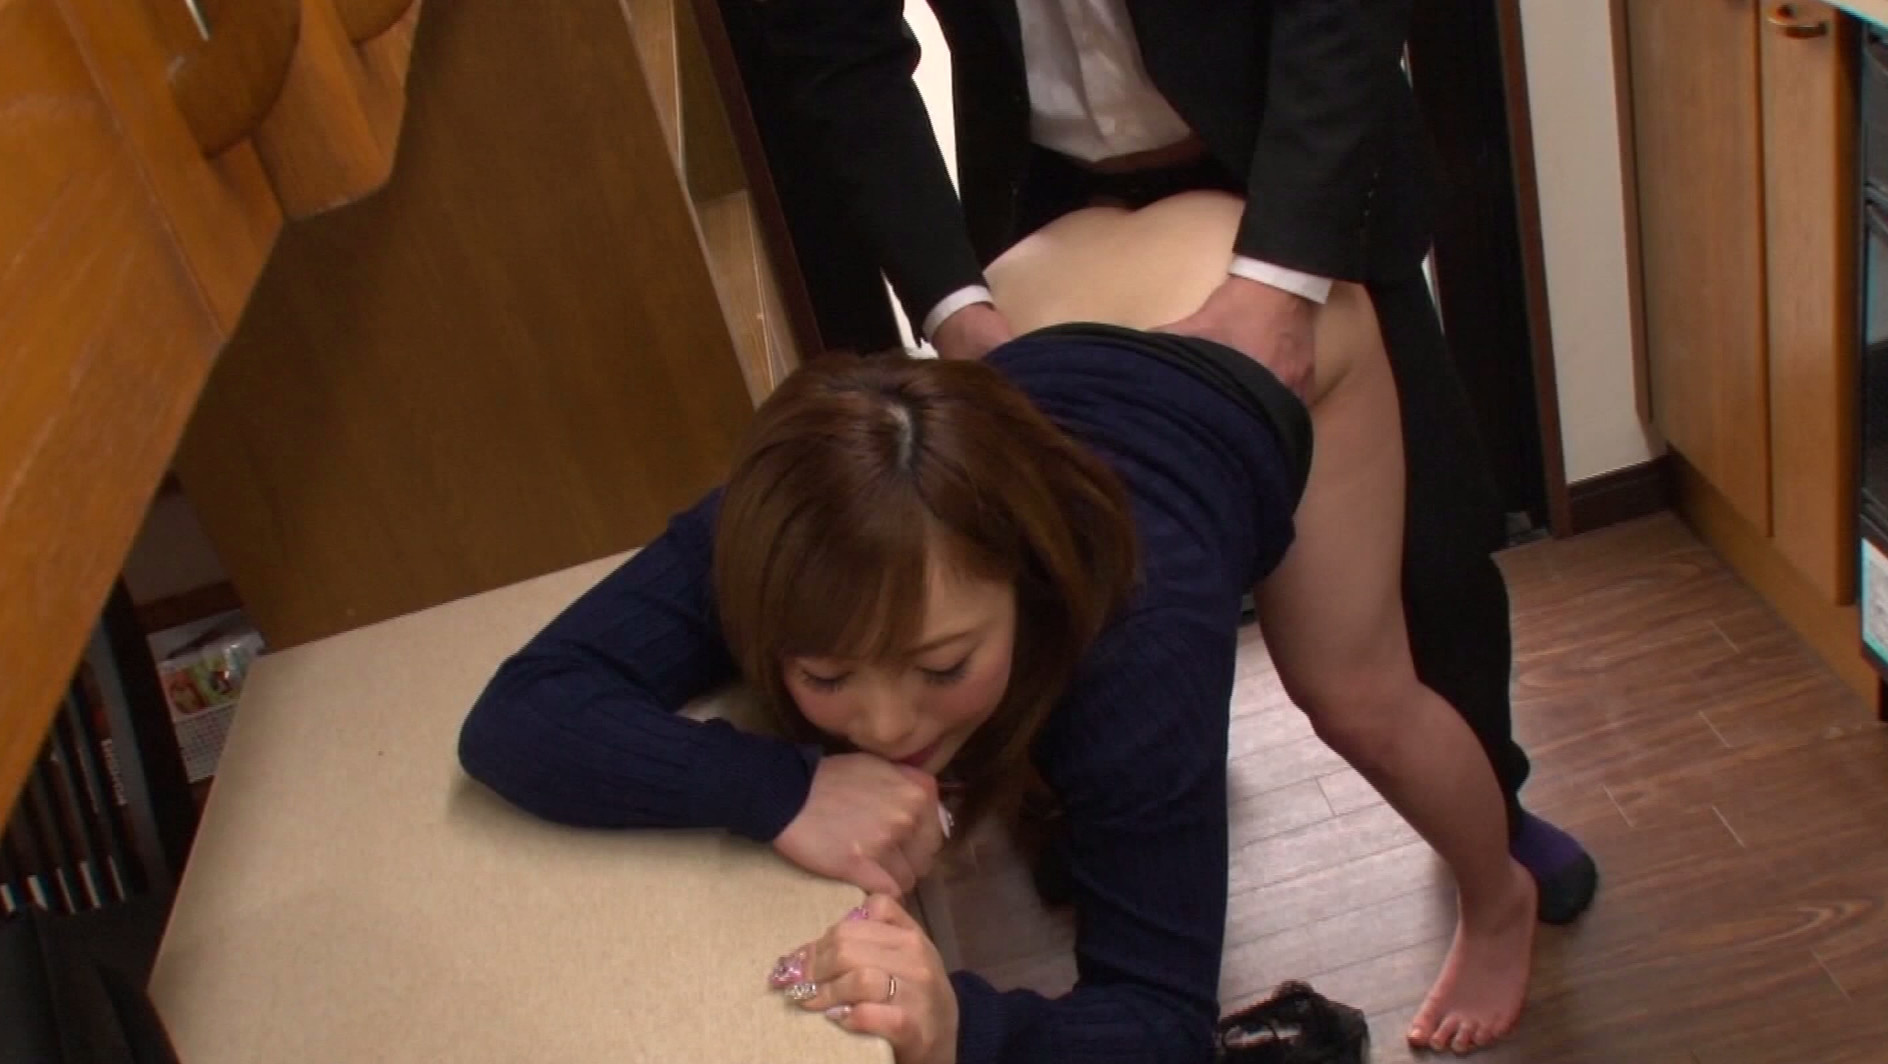 Office Doggystyle Sex